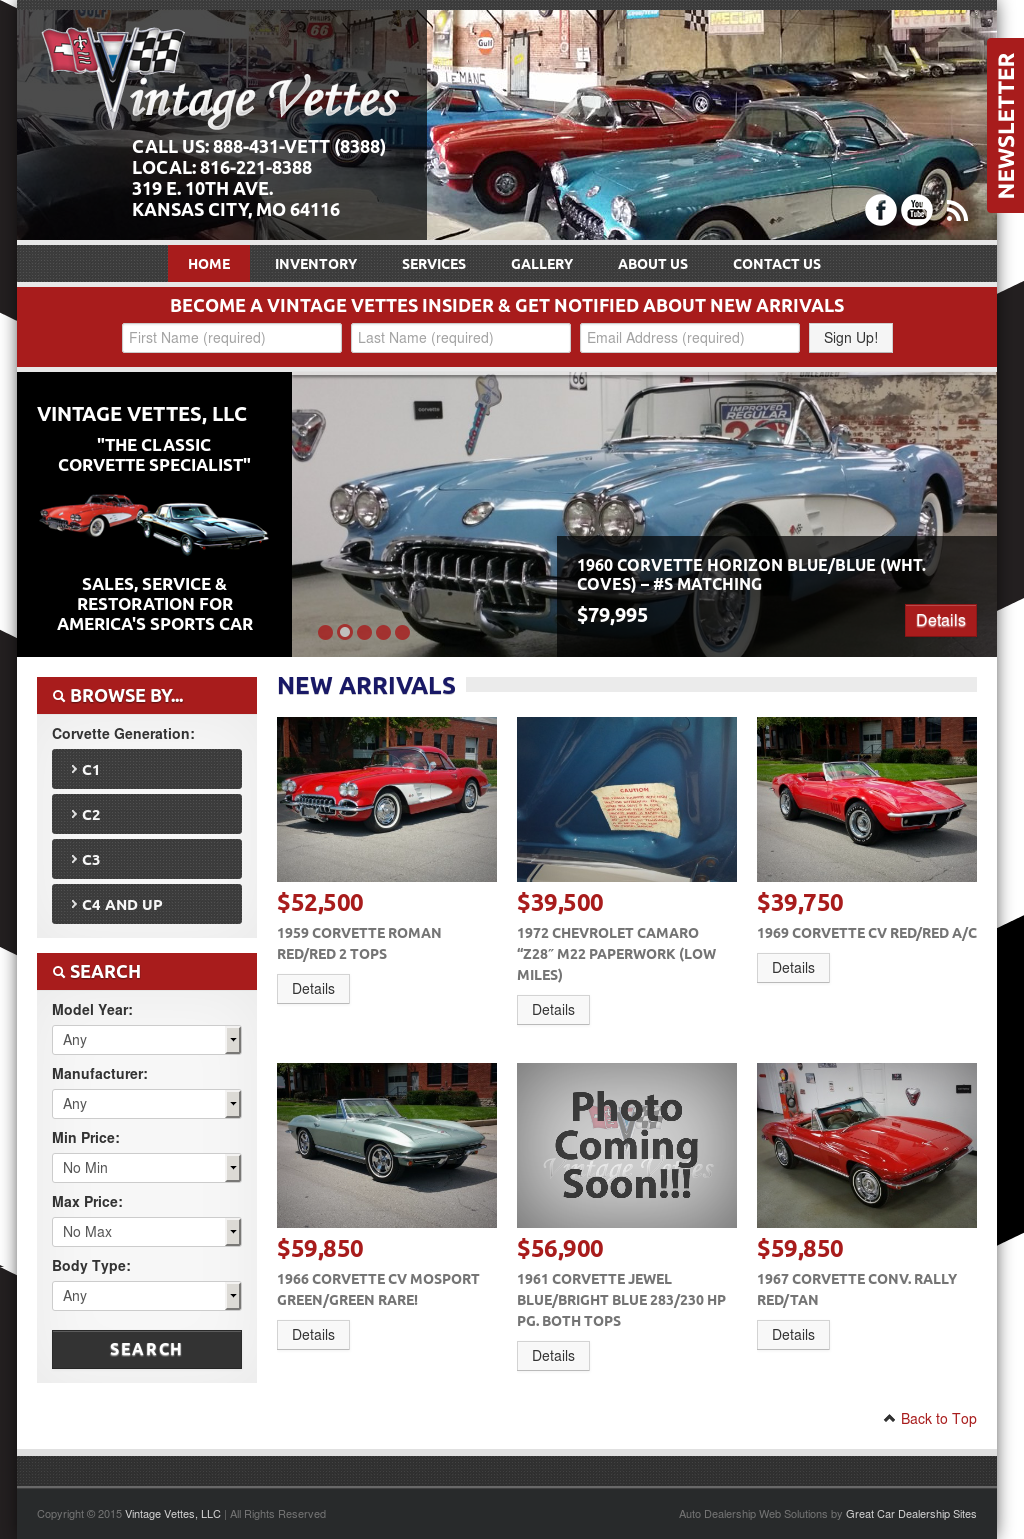 Vintage Vettes Competitors, Revenue and Employees - Owler